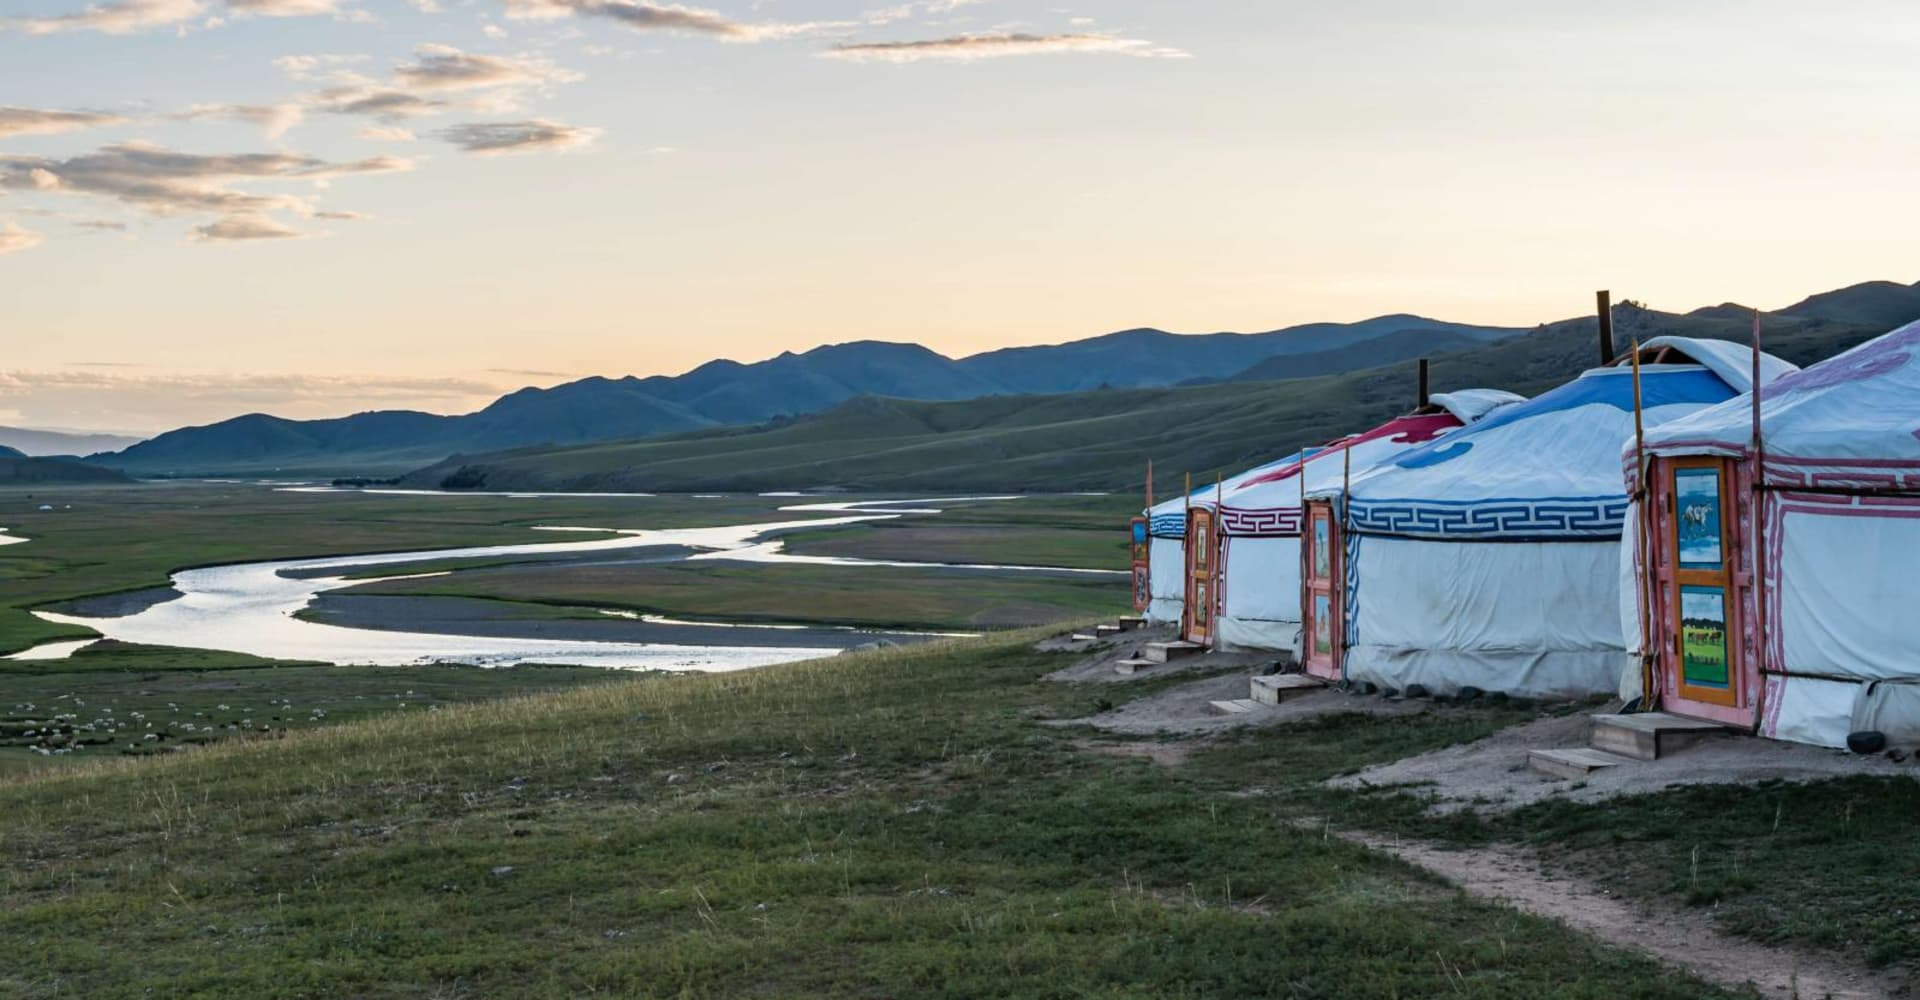 GALLERY - The Pavilions Mongolia